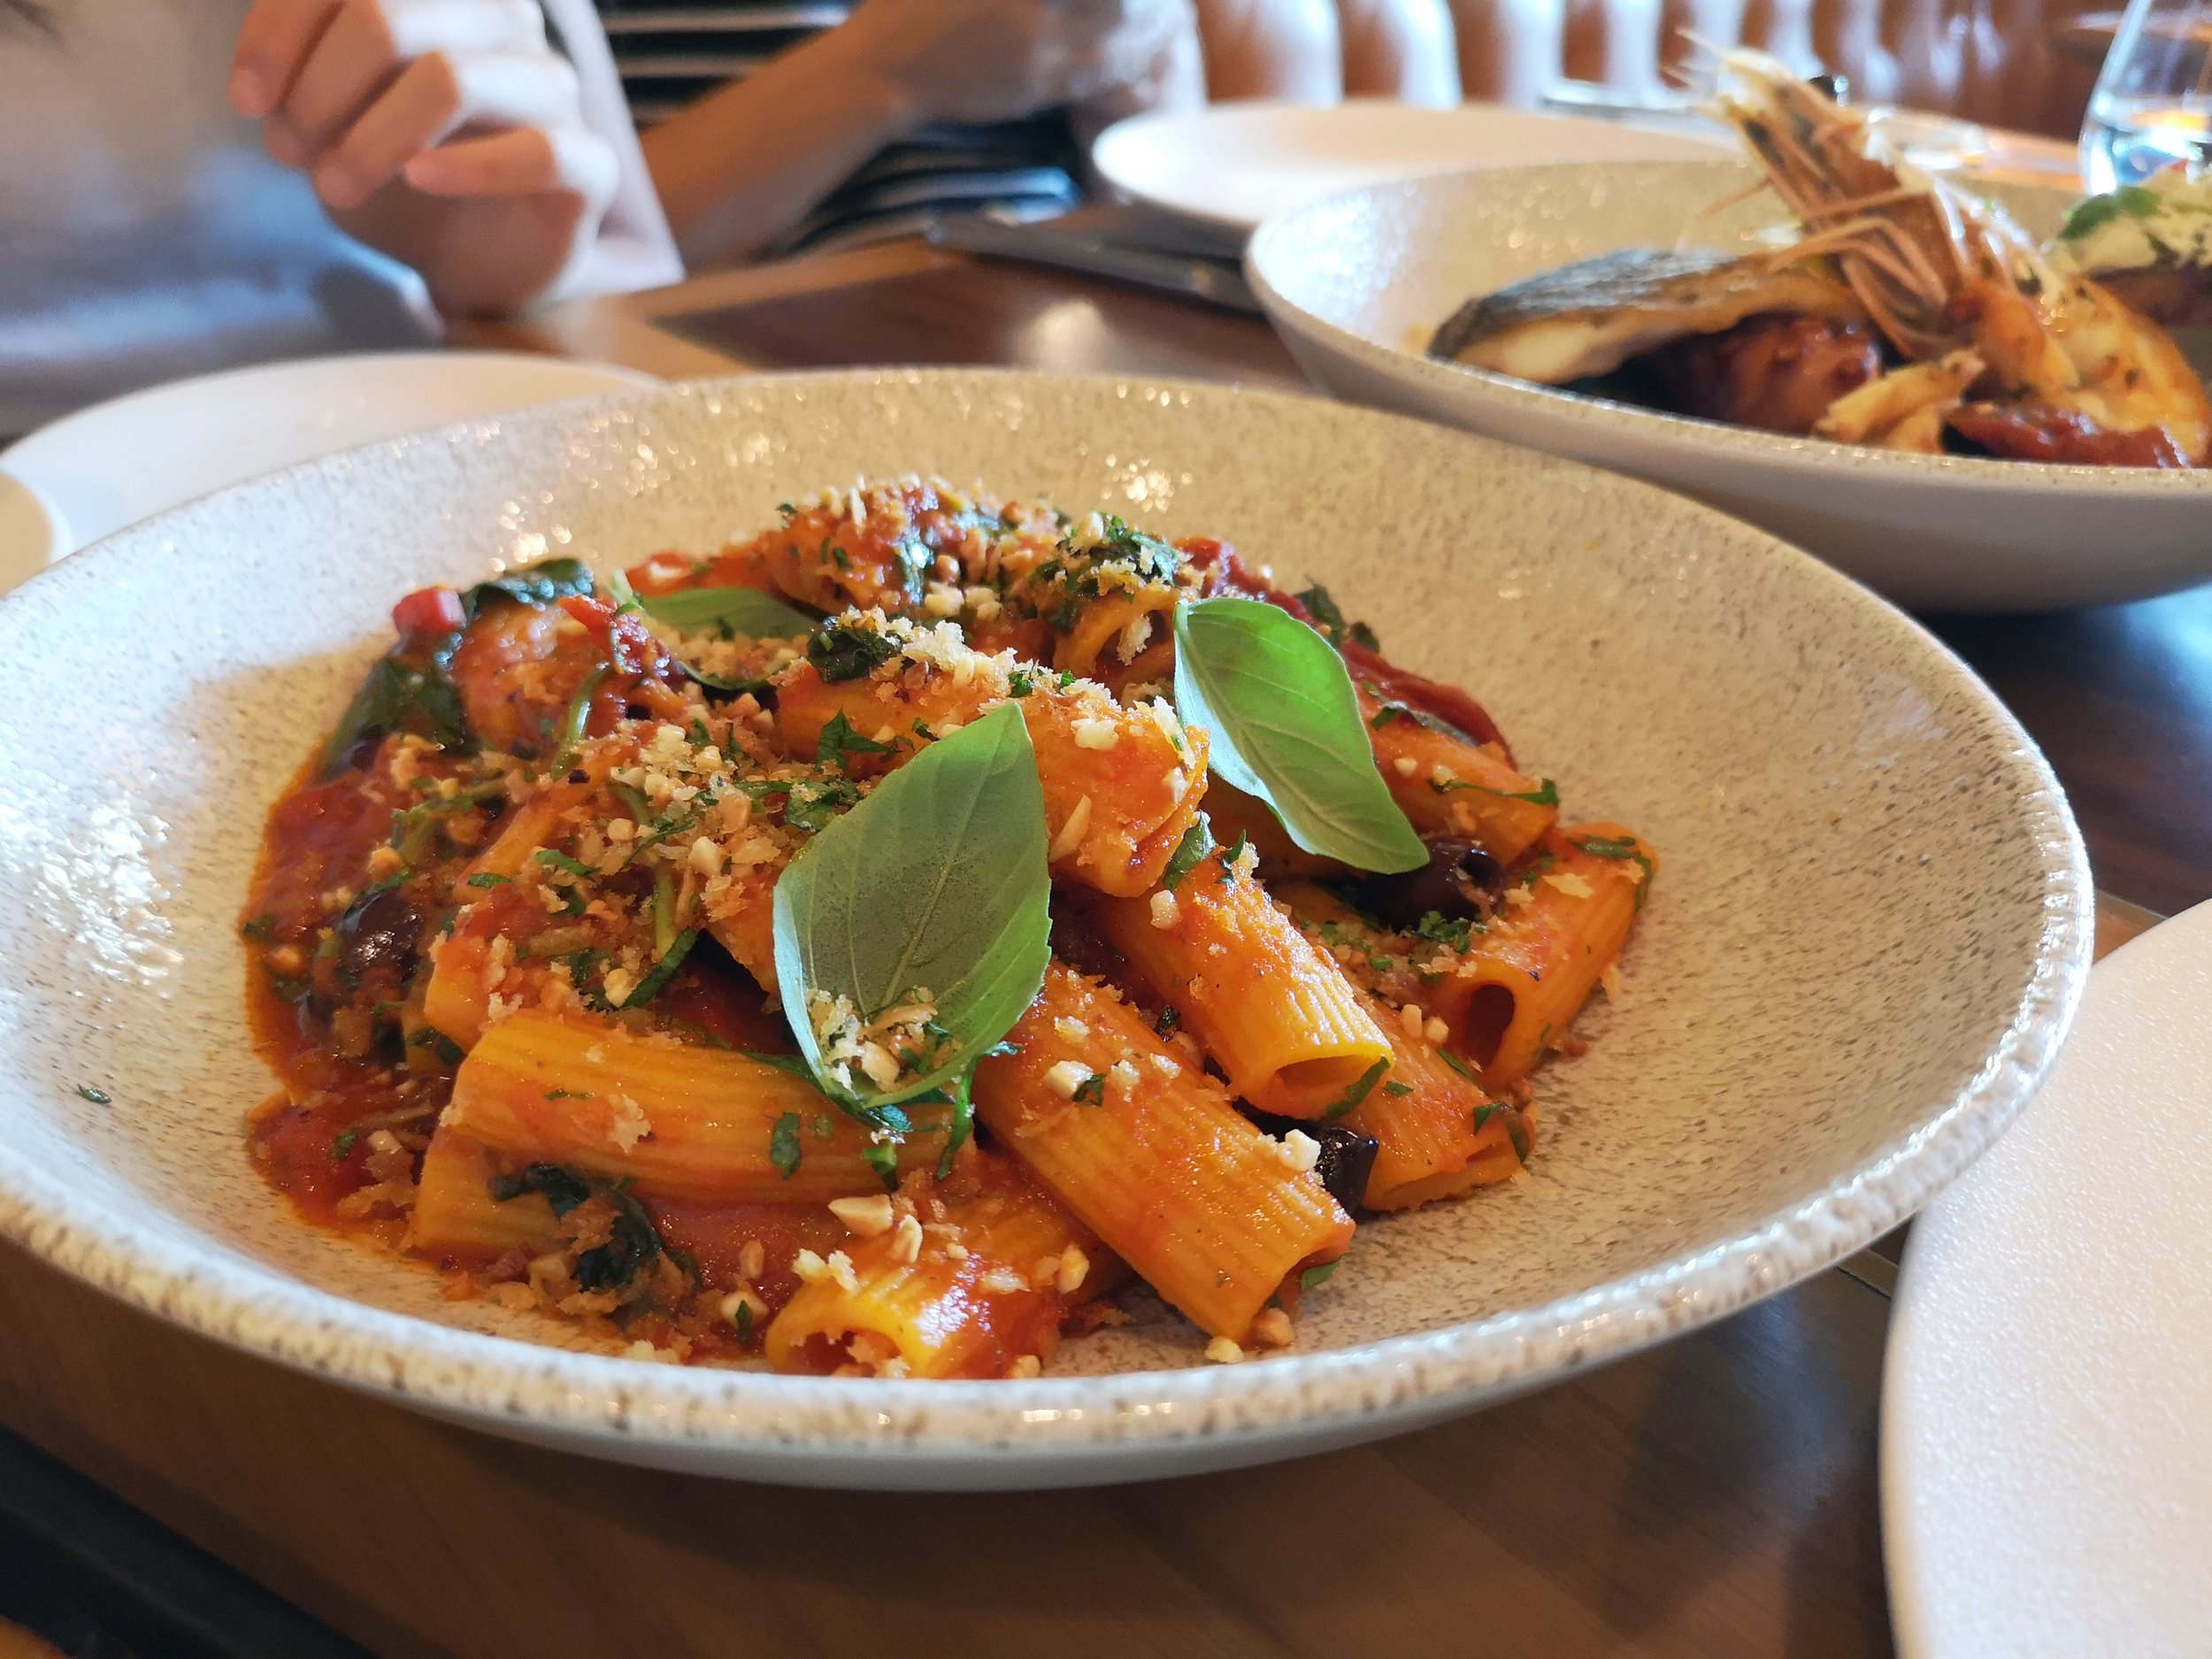 Rigatoni with spicy tomato sauce, taggiasche olives, bitter greens, toasted almonds (AED105)